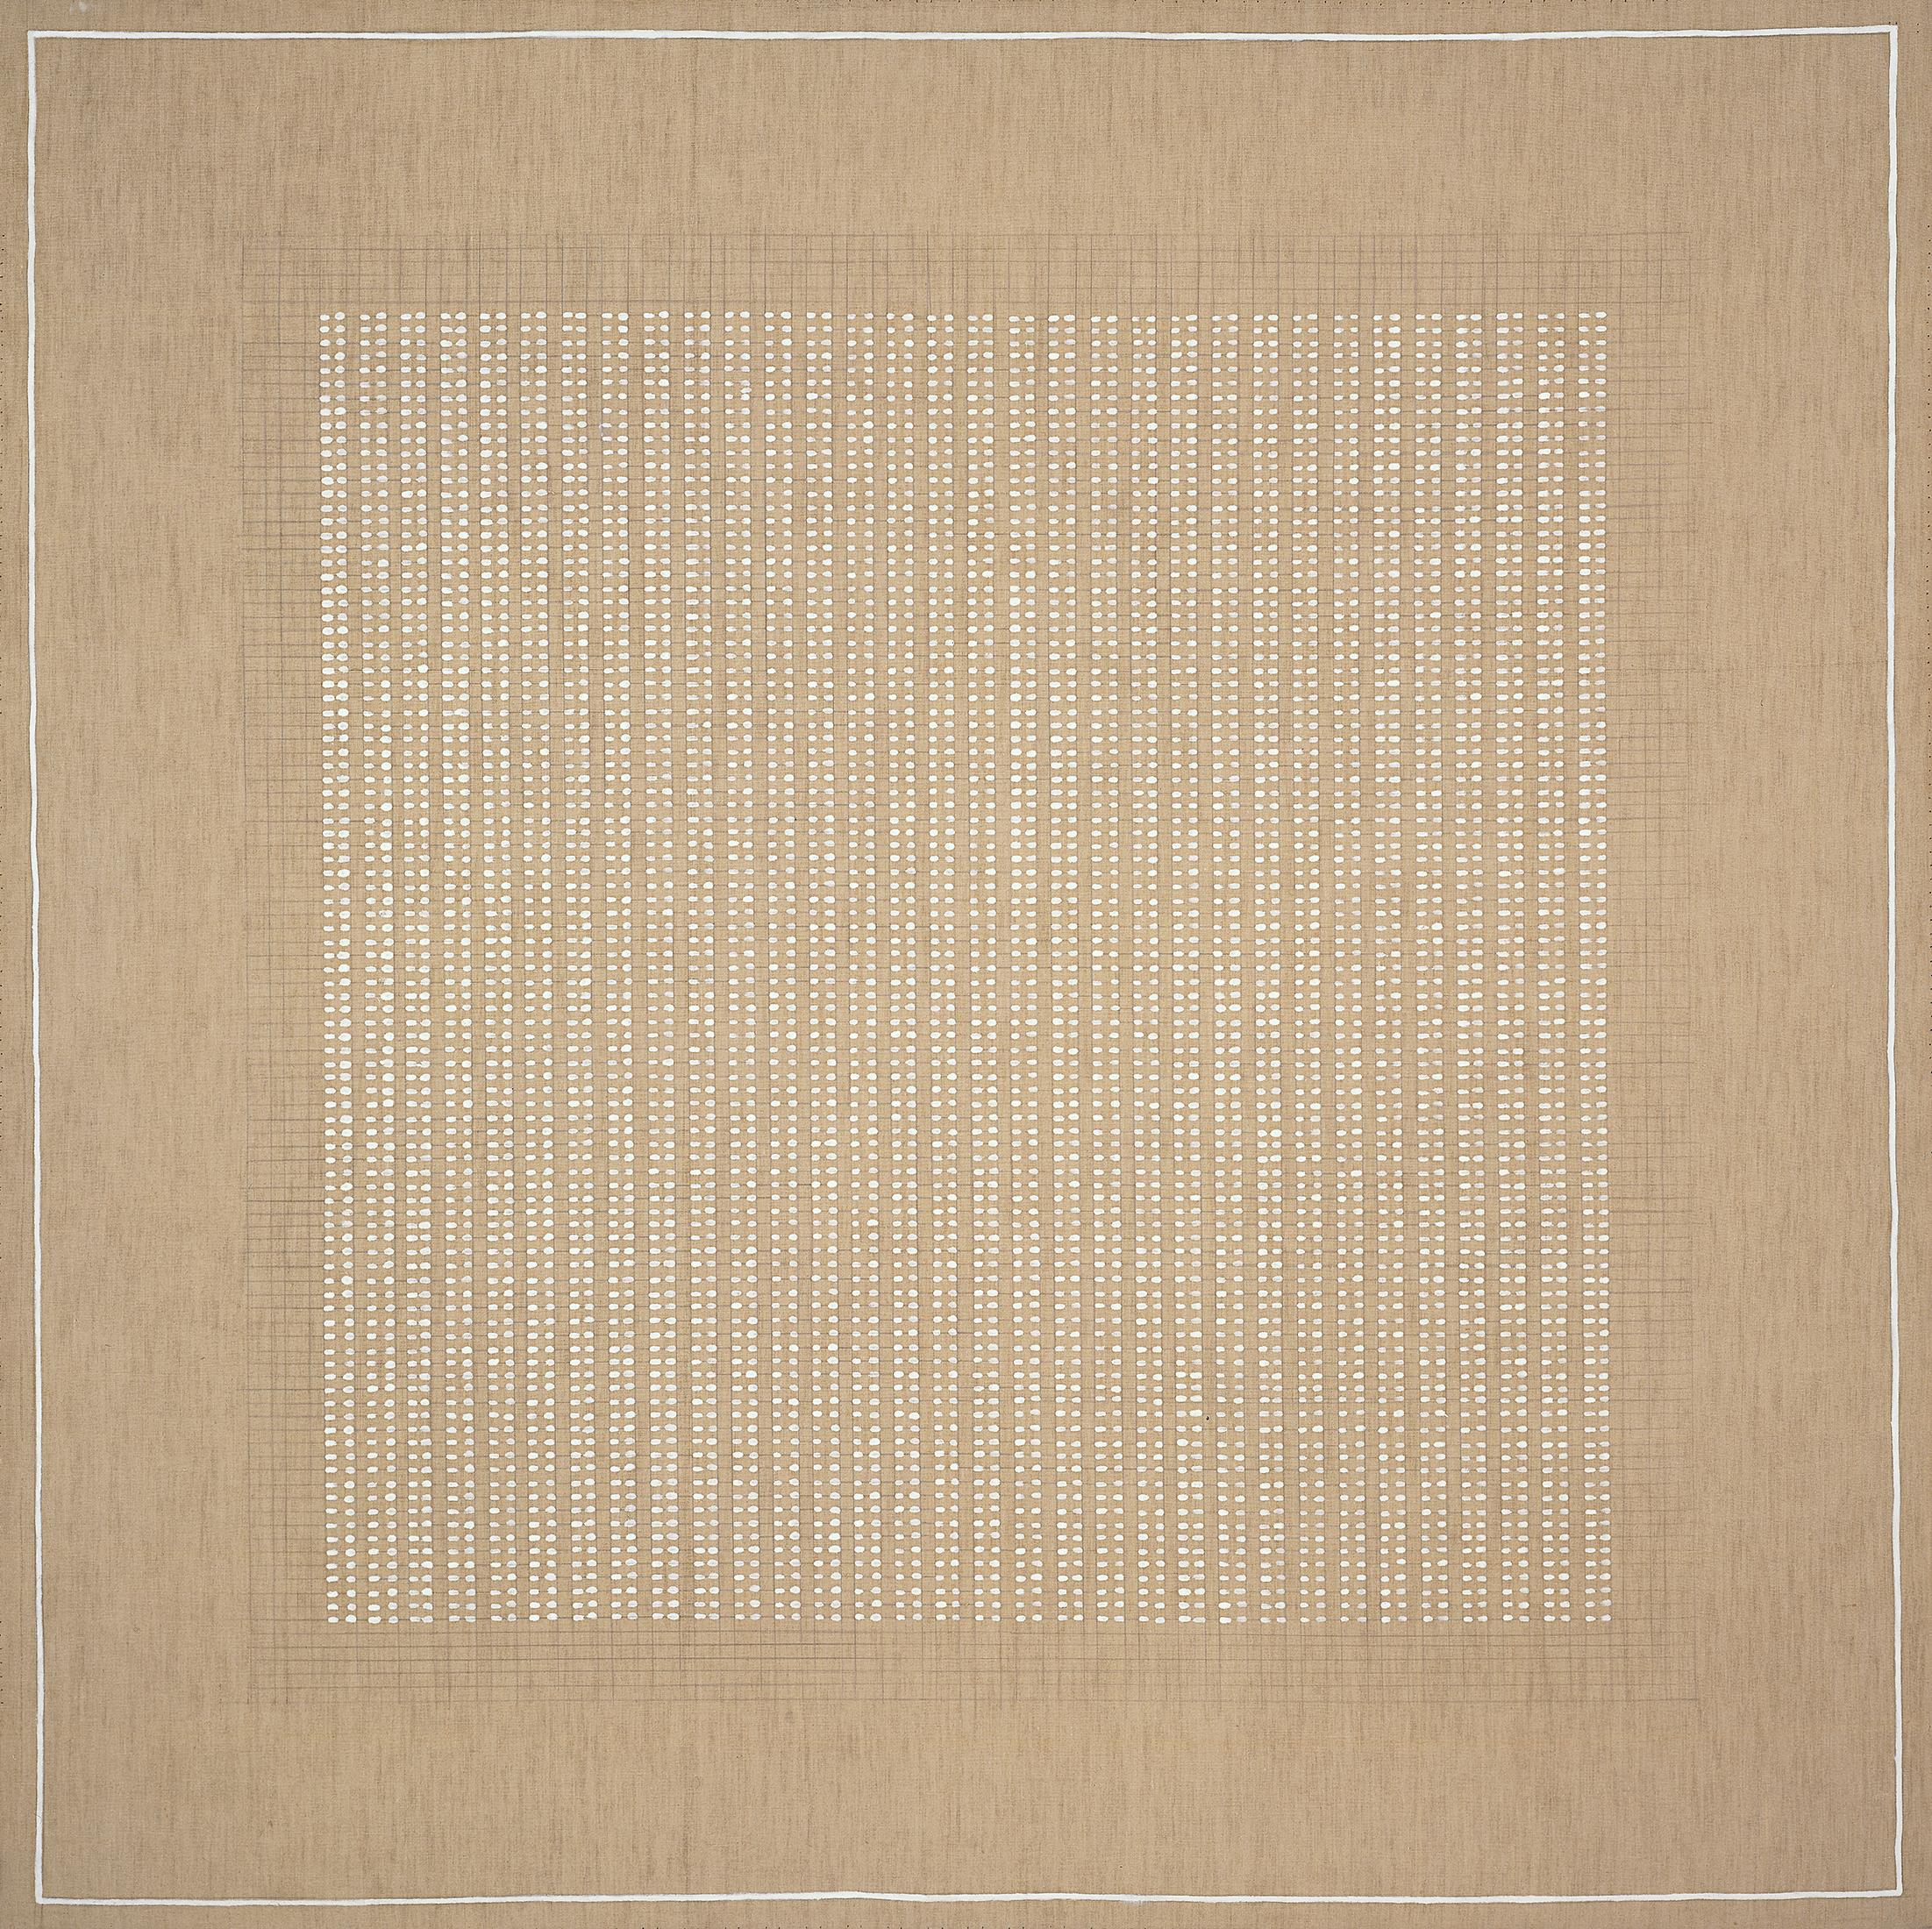 A grid is hand-drawn in pencil on a square, ochre-coloured canvas. Most of the grid, which mirrors the proportions of the canvas, is filled in with white dots.